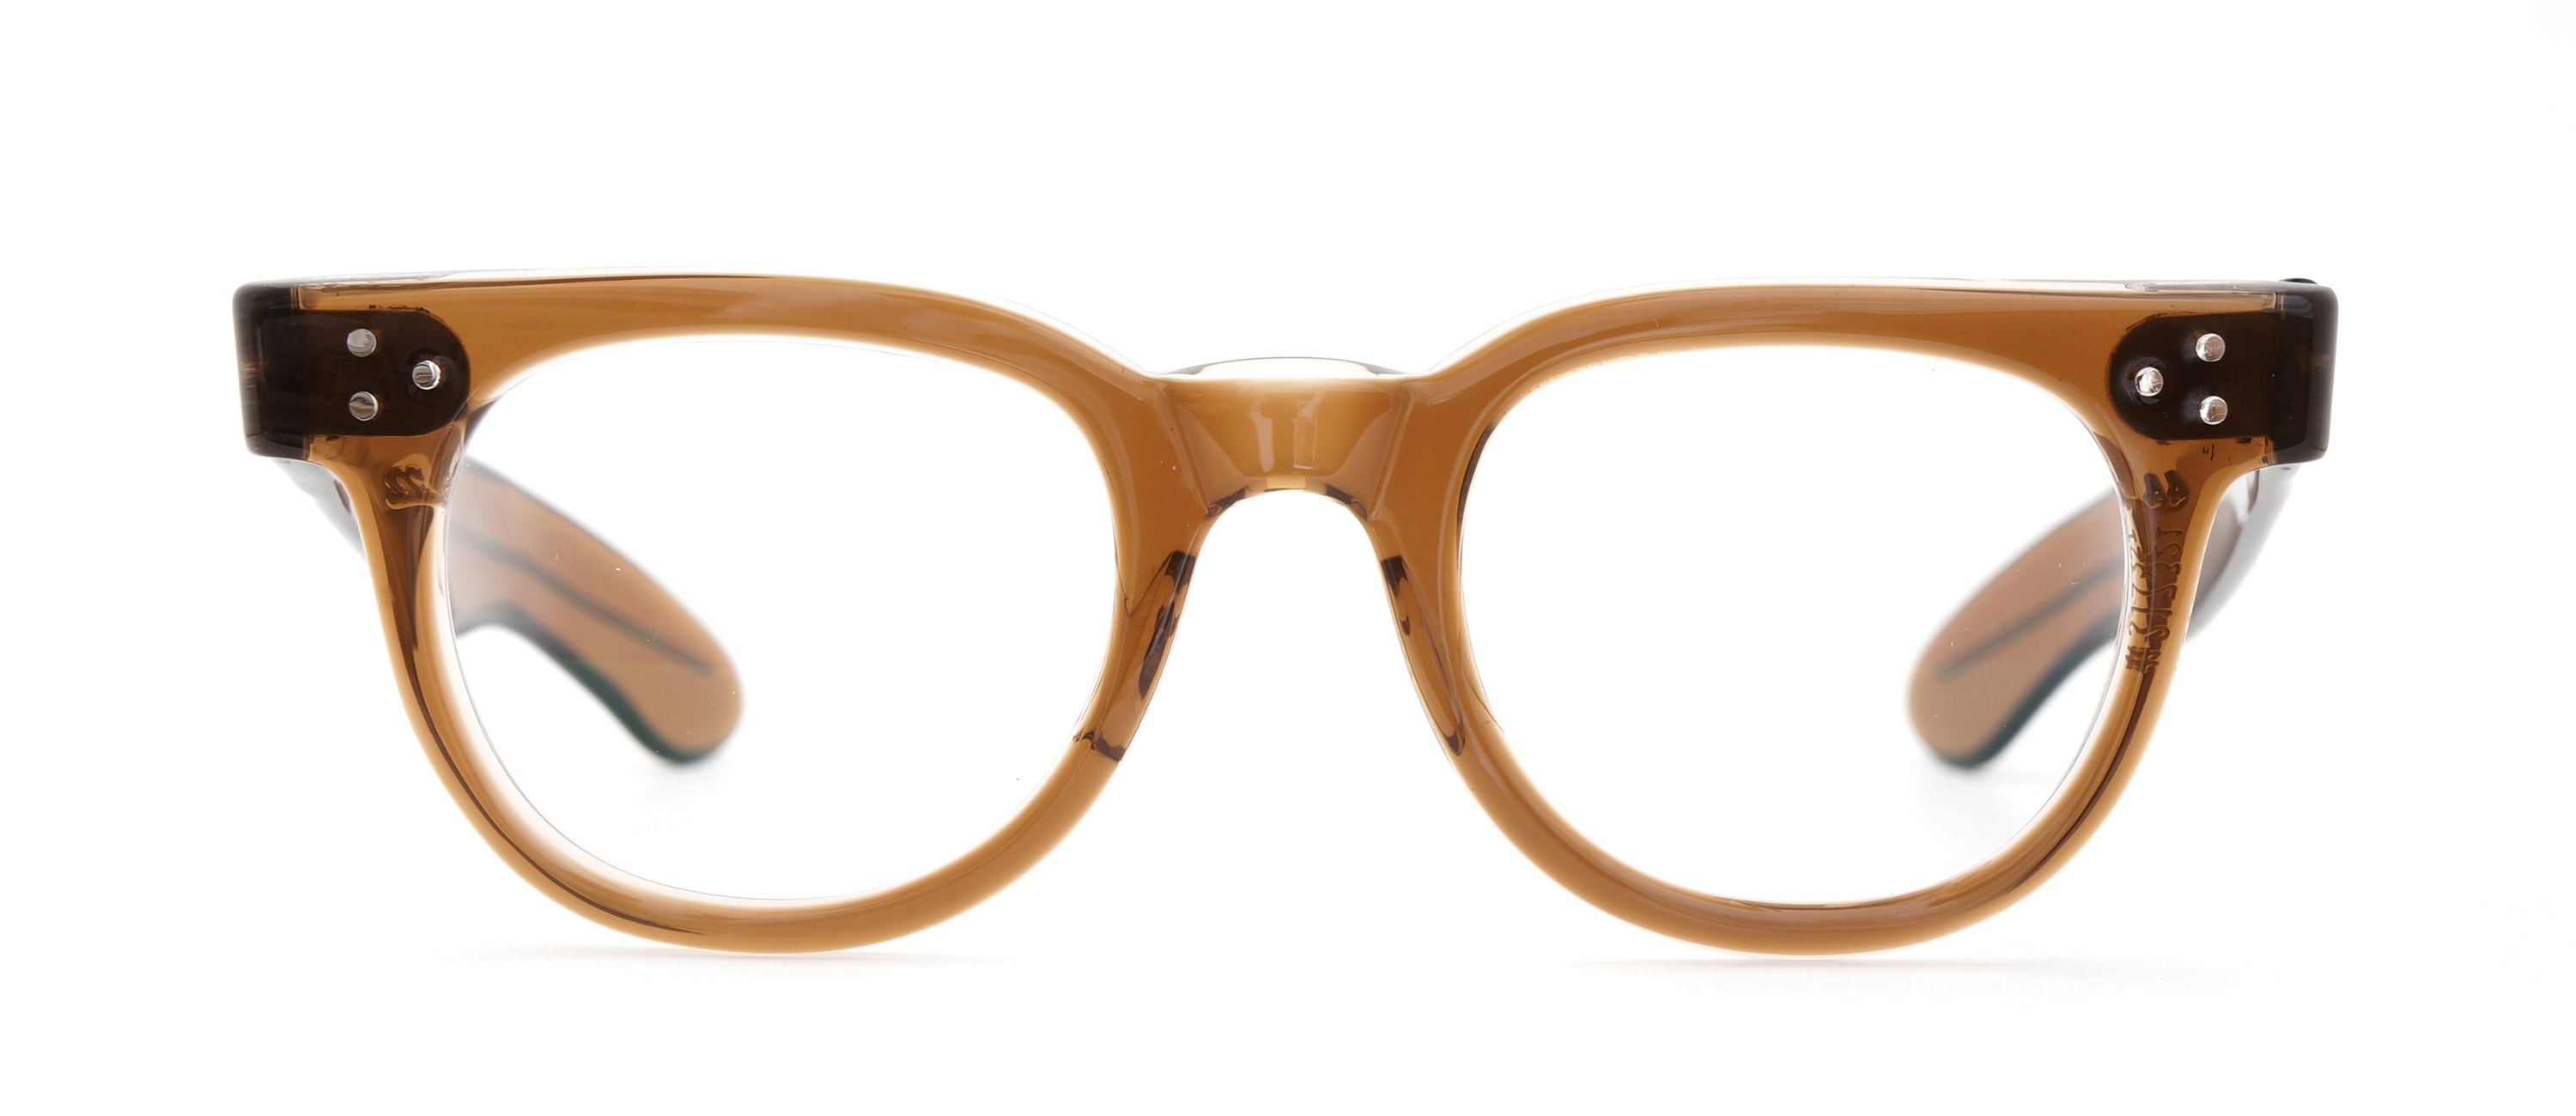 The Spectacle メガネ 1950s-70s TART OPTICAL FDR (FRAME USA) BROWN 44-22 イメージ2